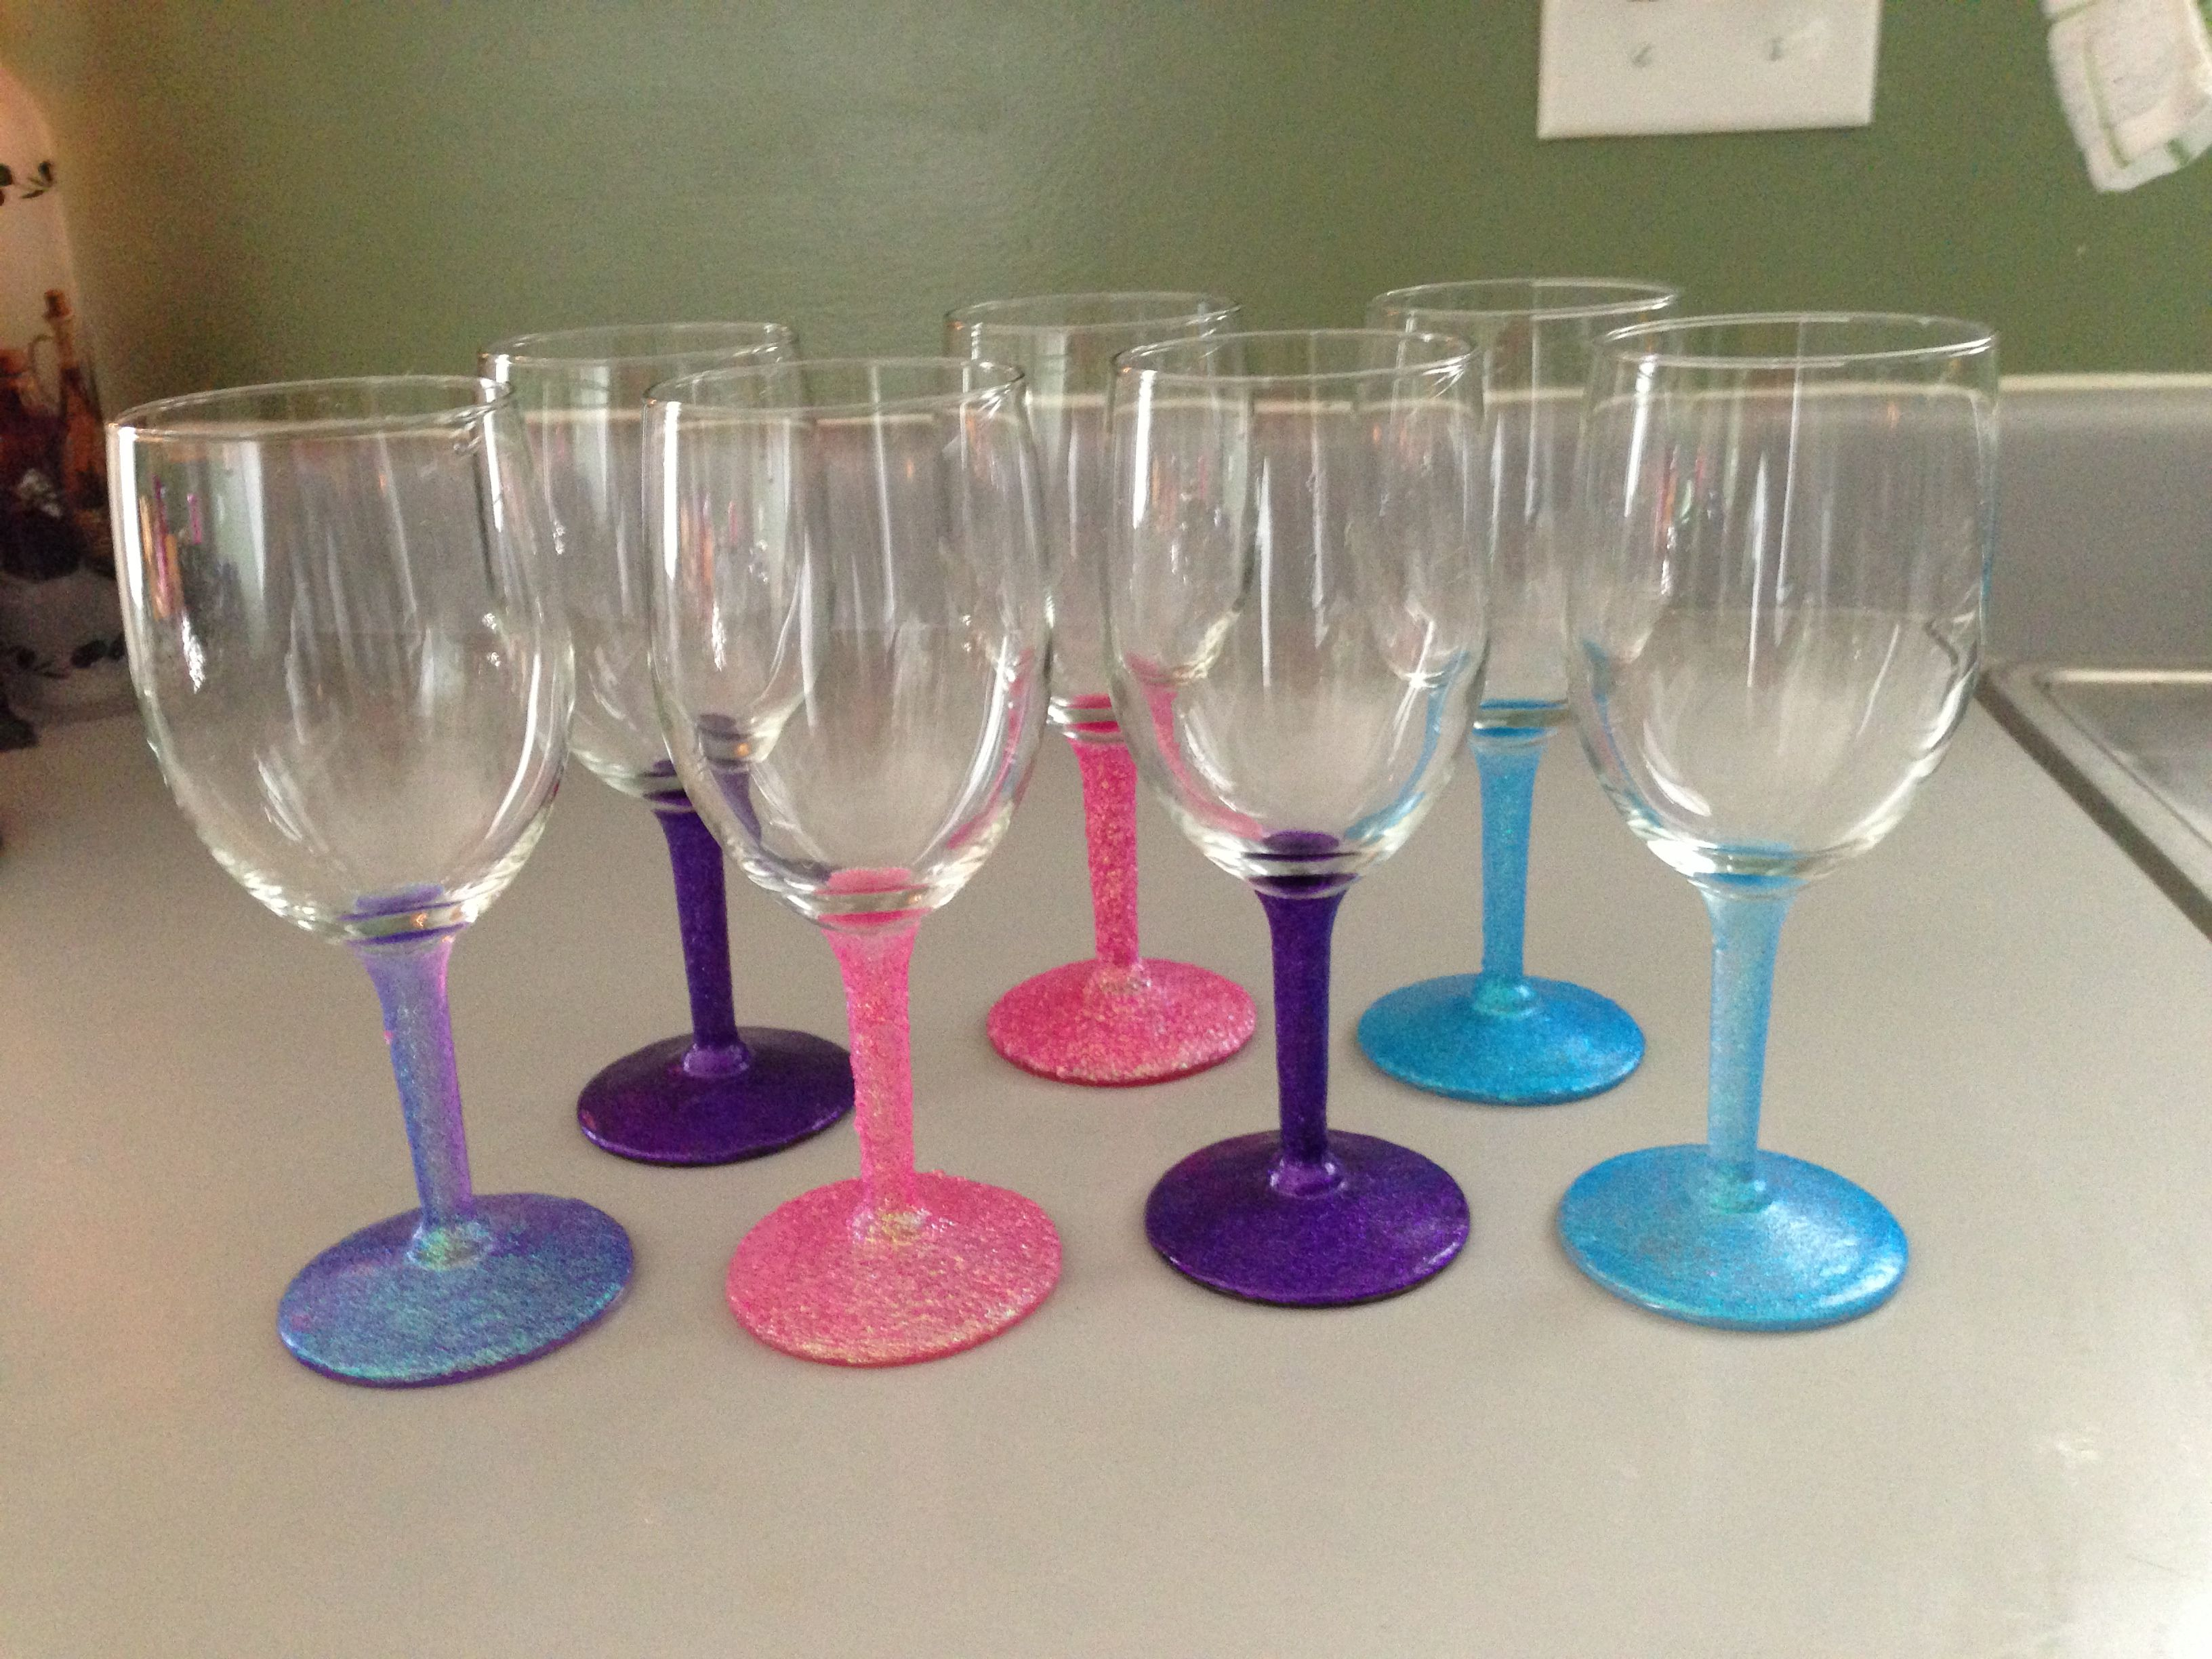 Wine glasses glitter mod podge wine glasses How to make wine glasses sparkle